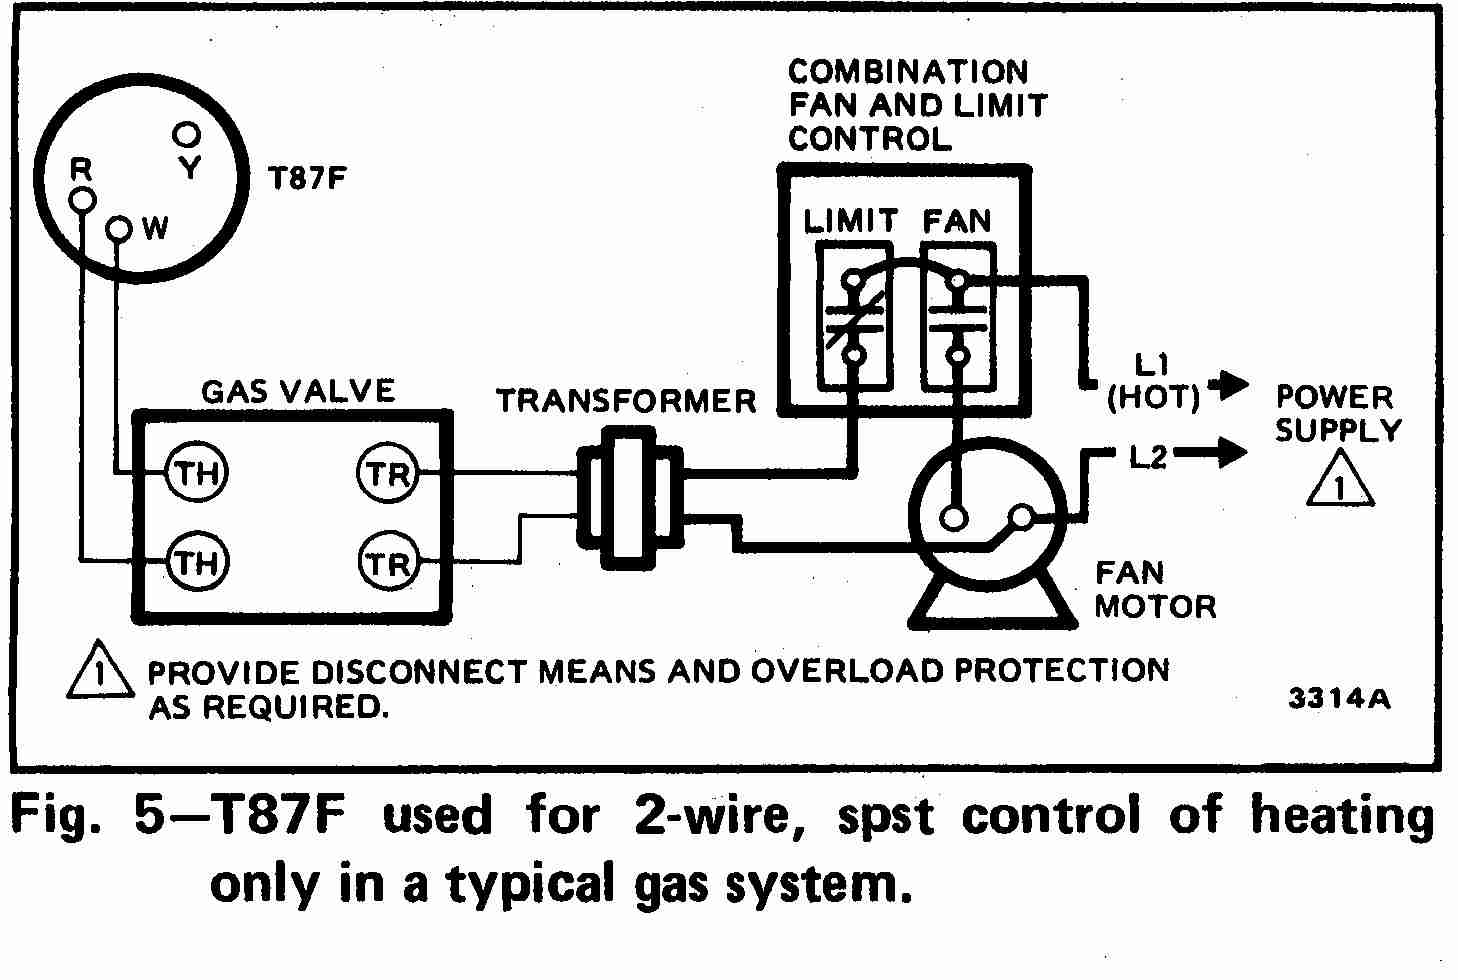 Carrier Package Units Wiring Diagrams as well Inspectapedia   heat thermostat diagrams as well Honeywell Wifi Thermostat Wiring Diagram as well Carrier Digital Thermostat Wiring Diagram in addition Honeywell Rth3100c Thermostat Wiring Diagram. on programmable thermostat wiring diagrams